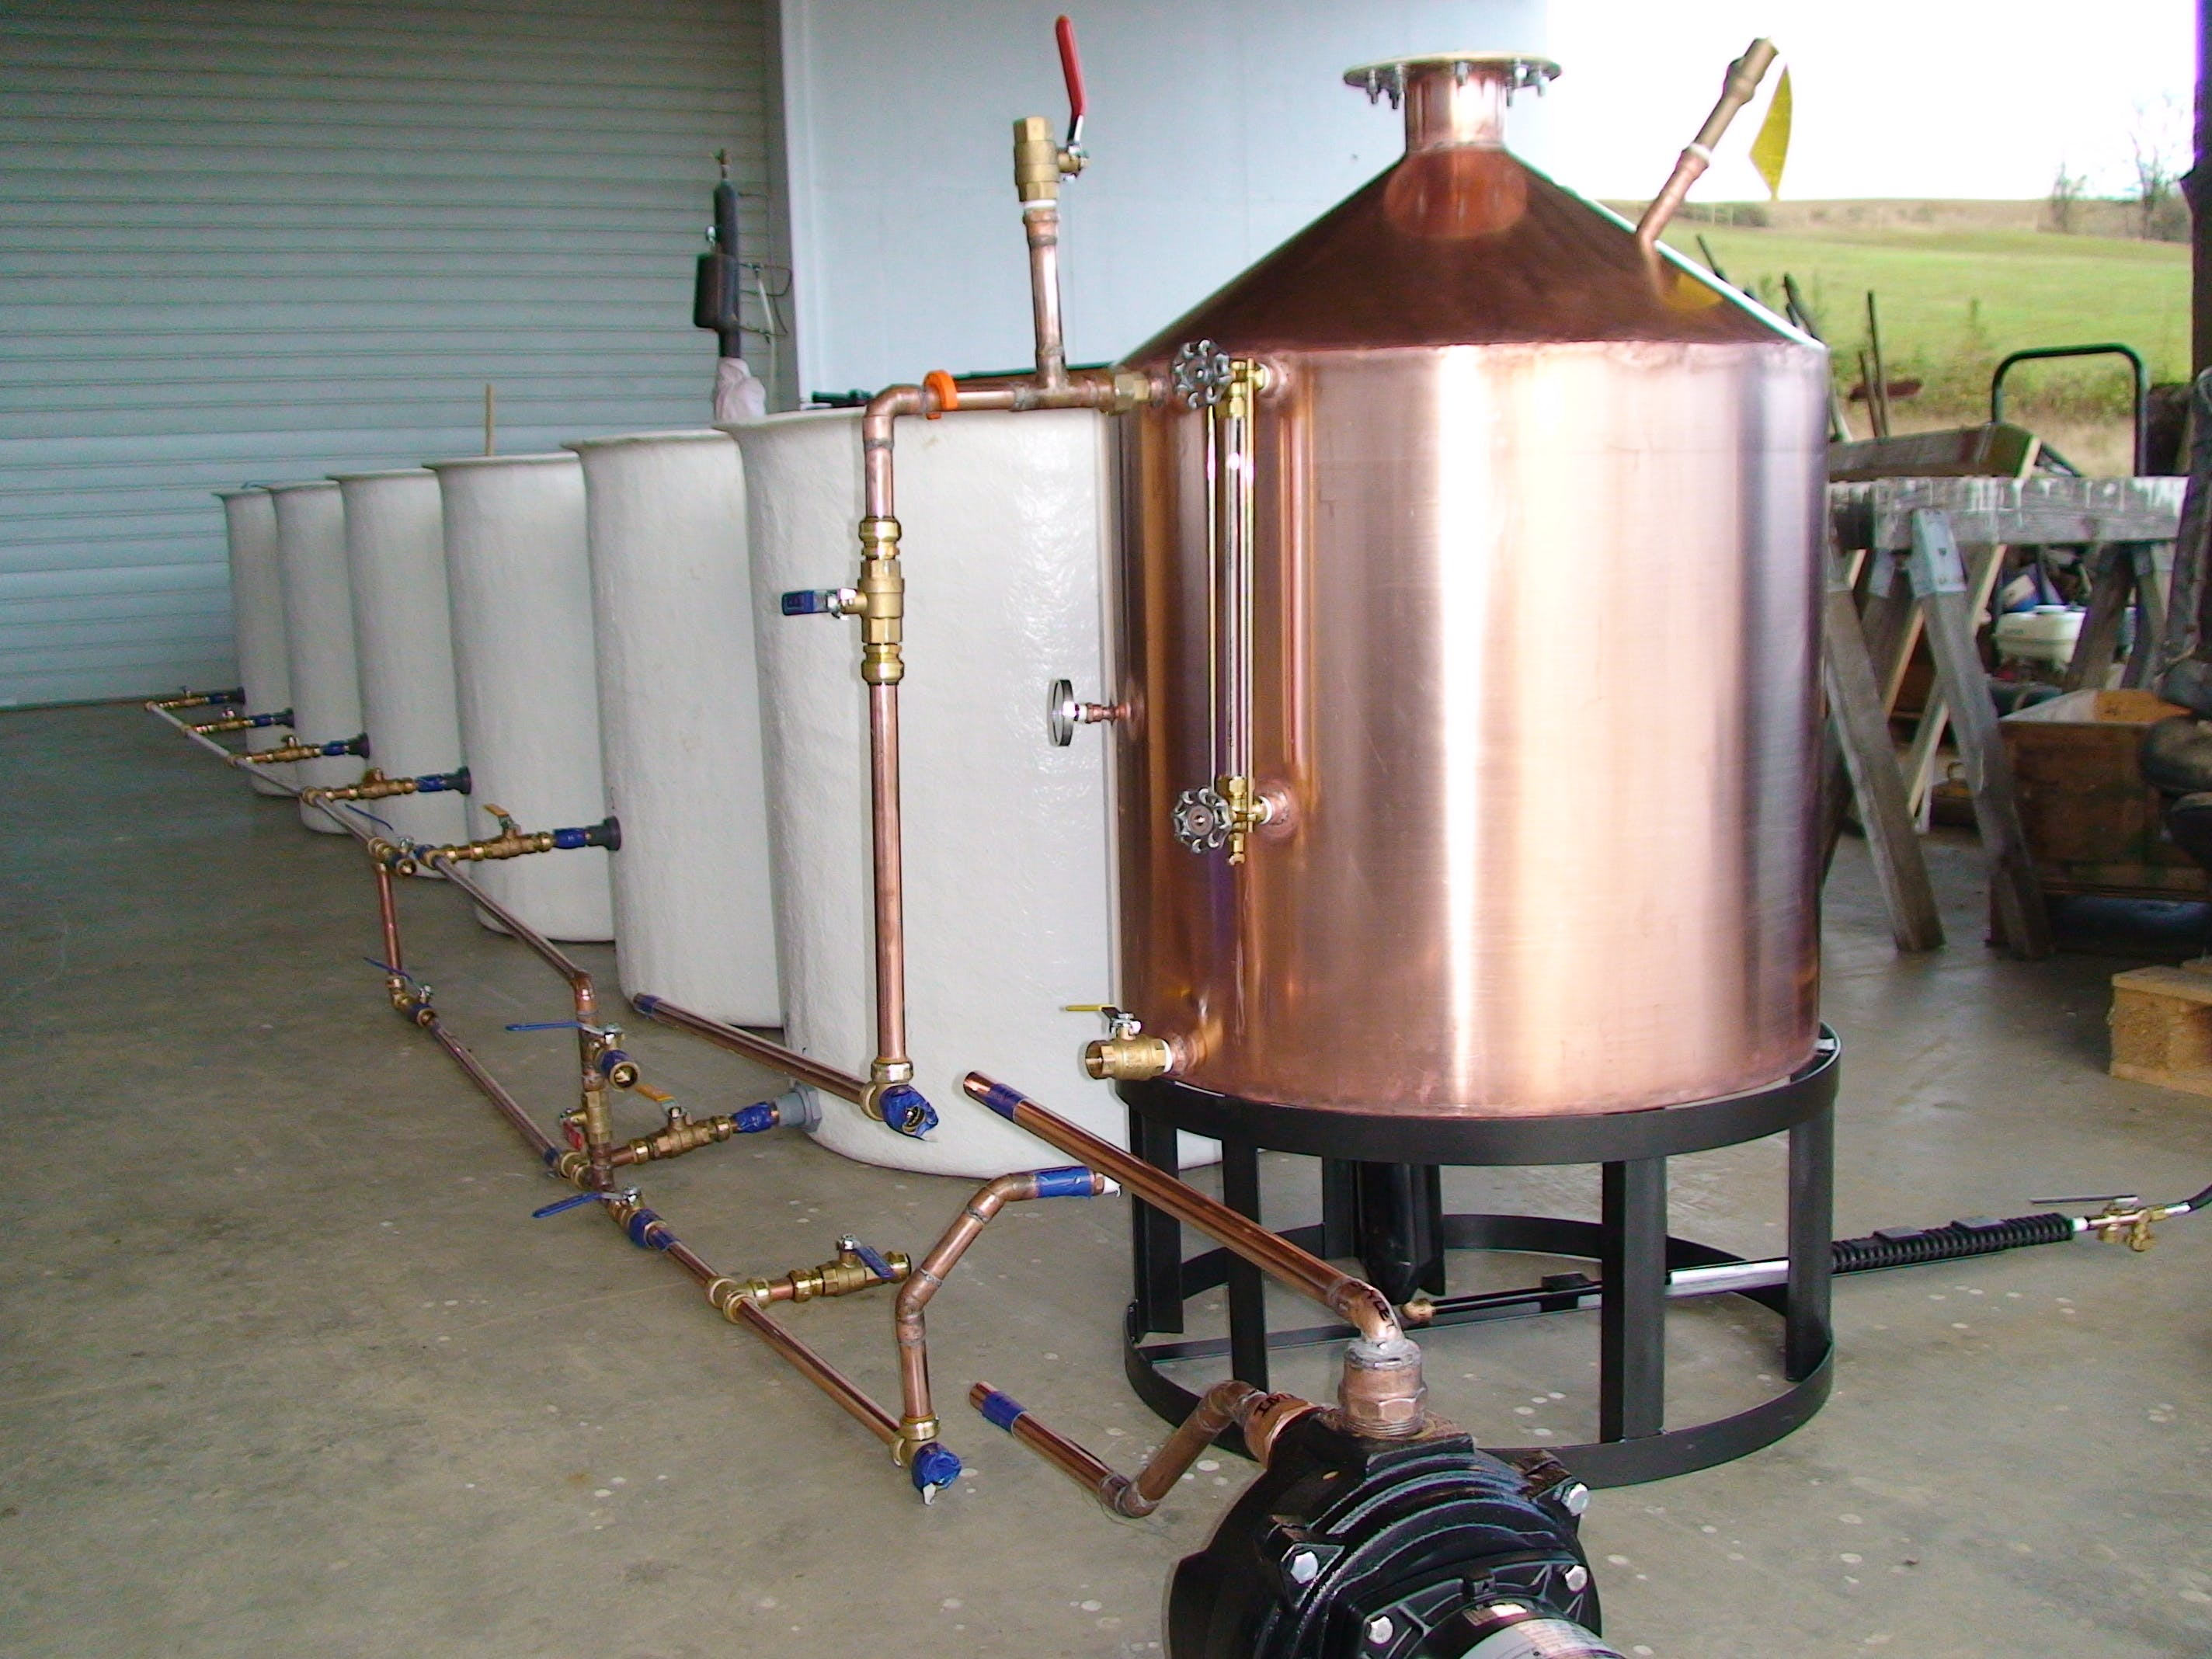 50 gallon propane system - All Copper alcohol distillers - sold by The Revenoor Company INC